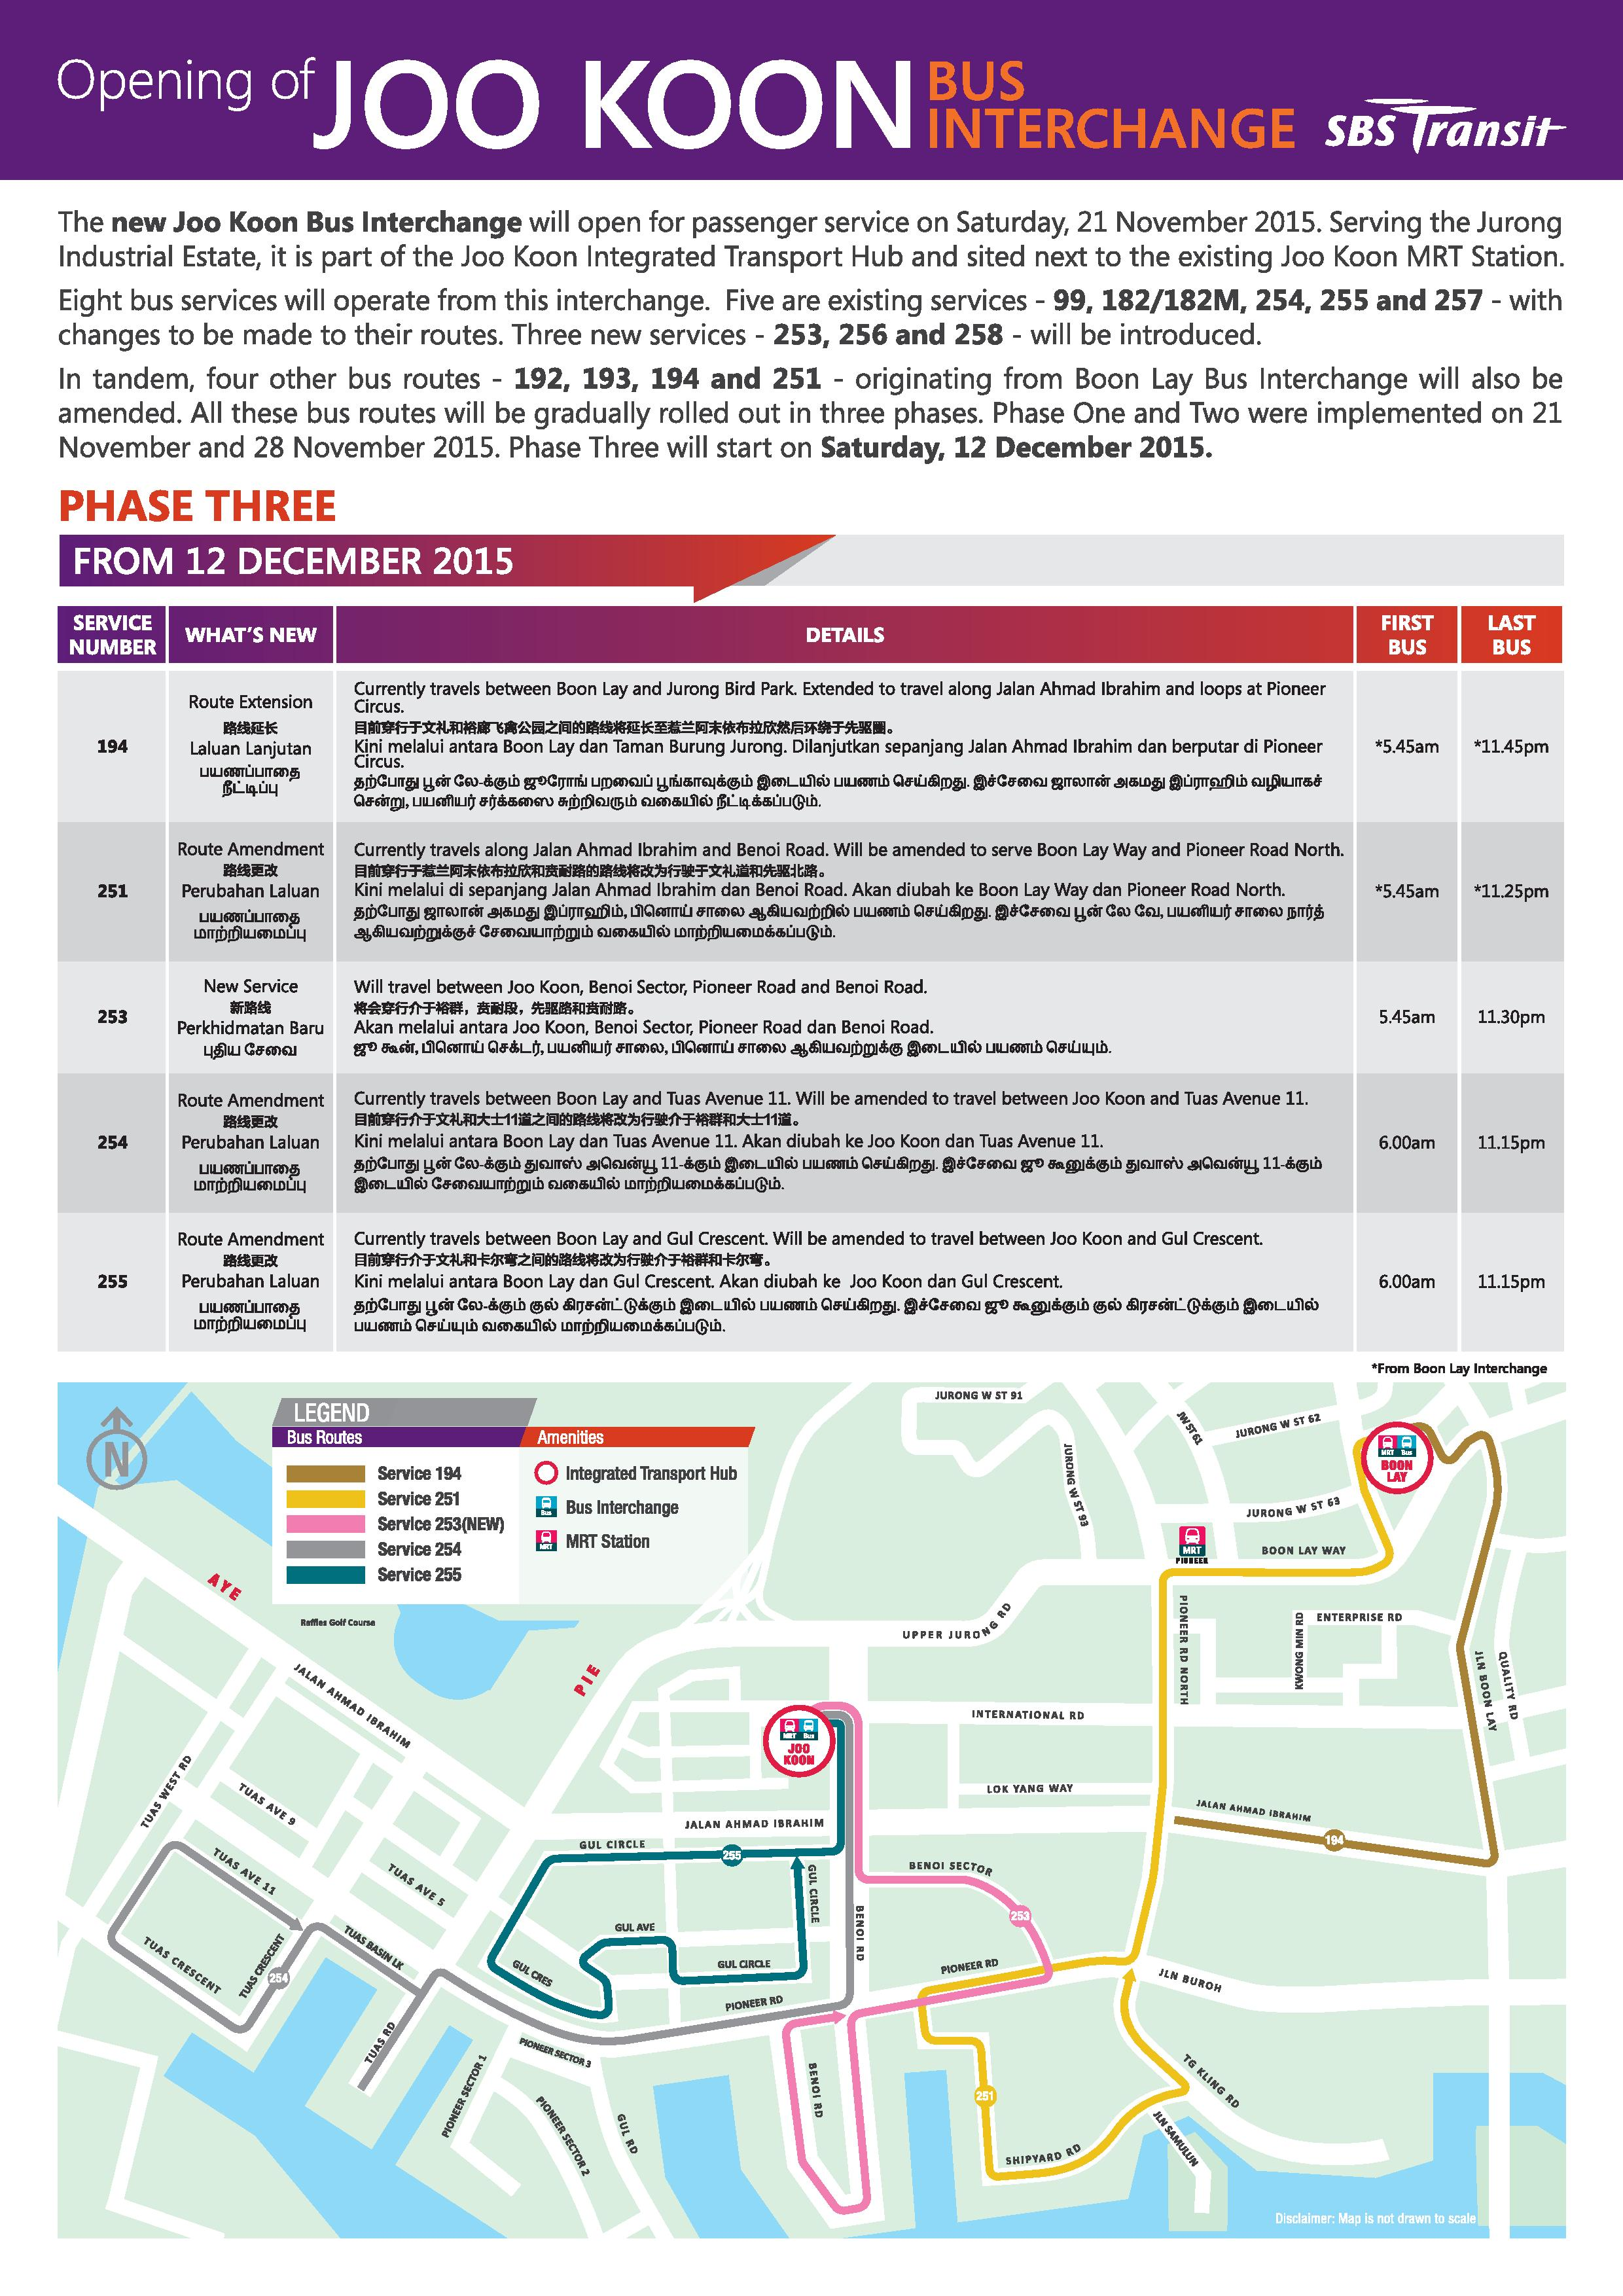 Guide to Bus Service Amendments for Joo Koon Bus ...